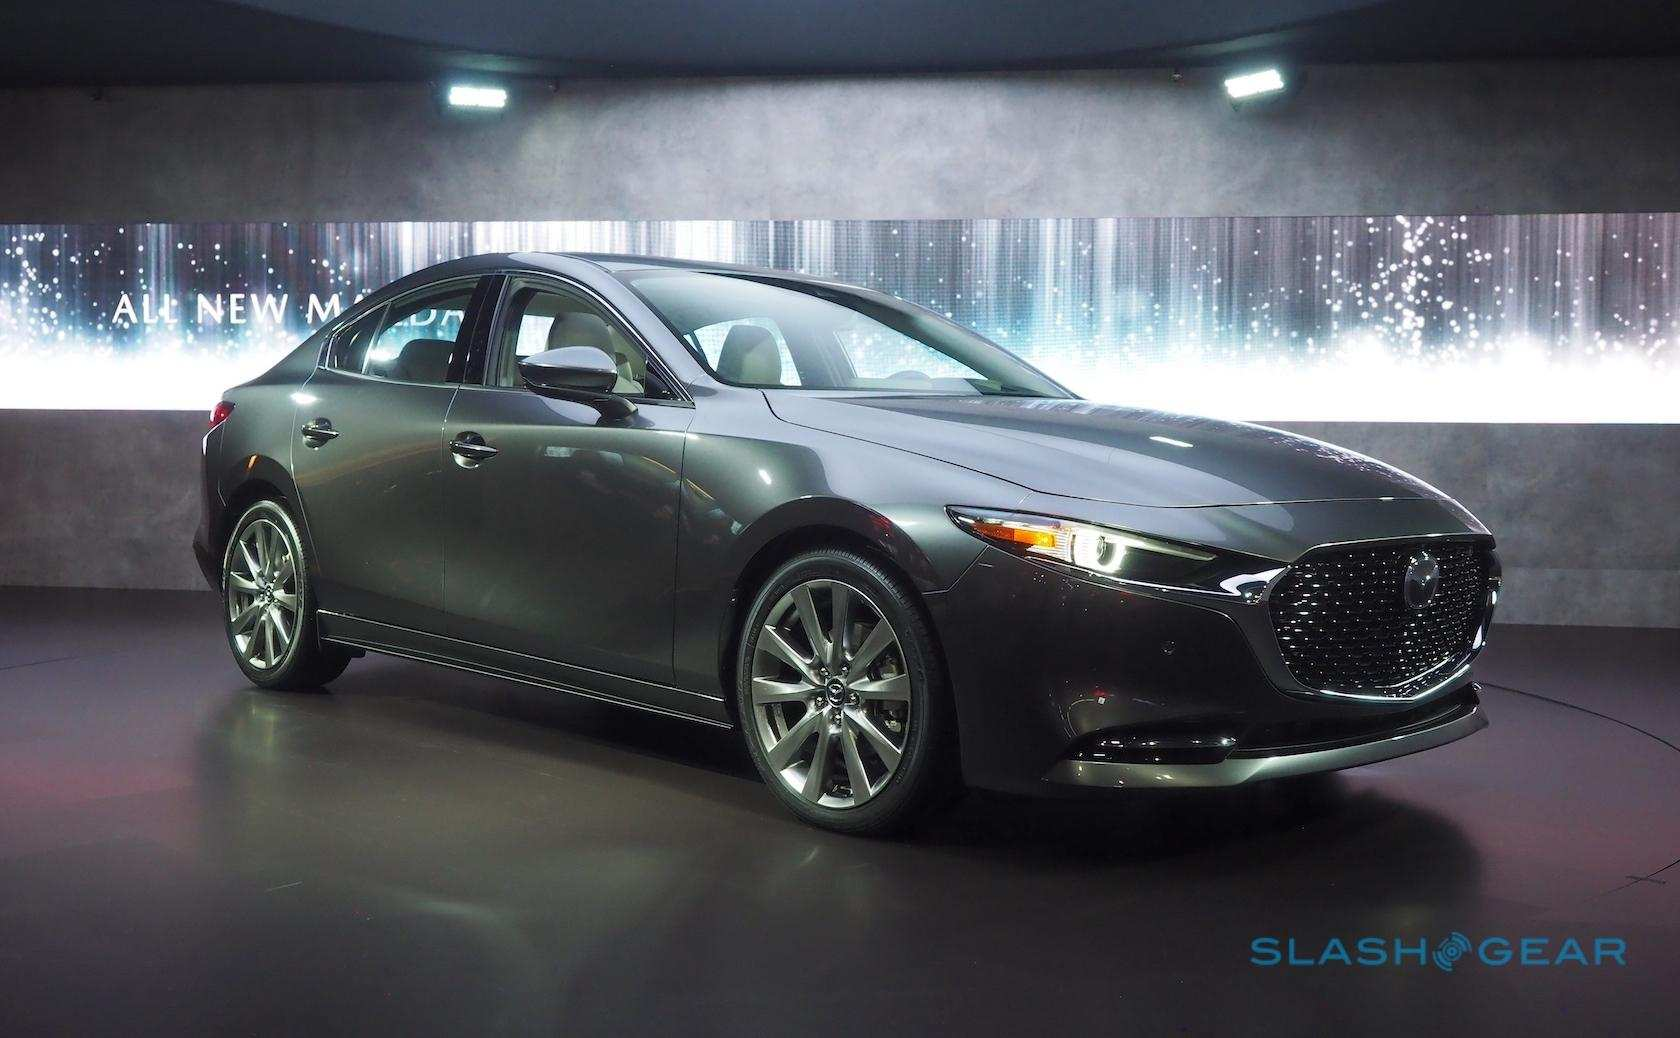 40 Best Review All New Mazda 6 2020 Specs and Review with All New Mazda 6 2020